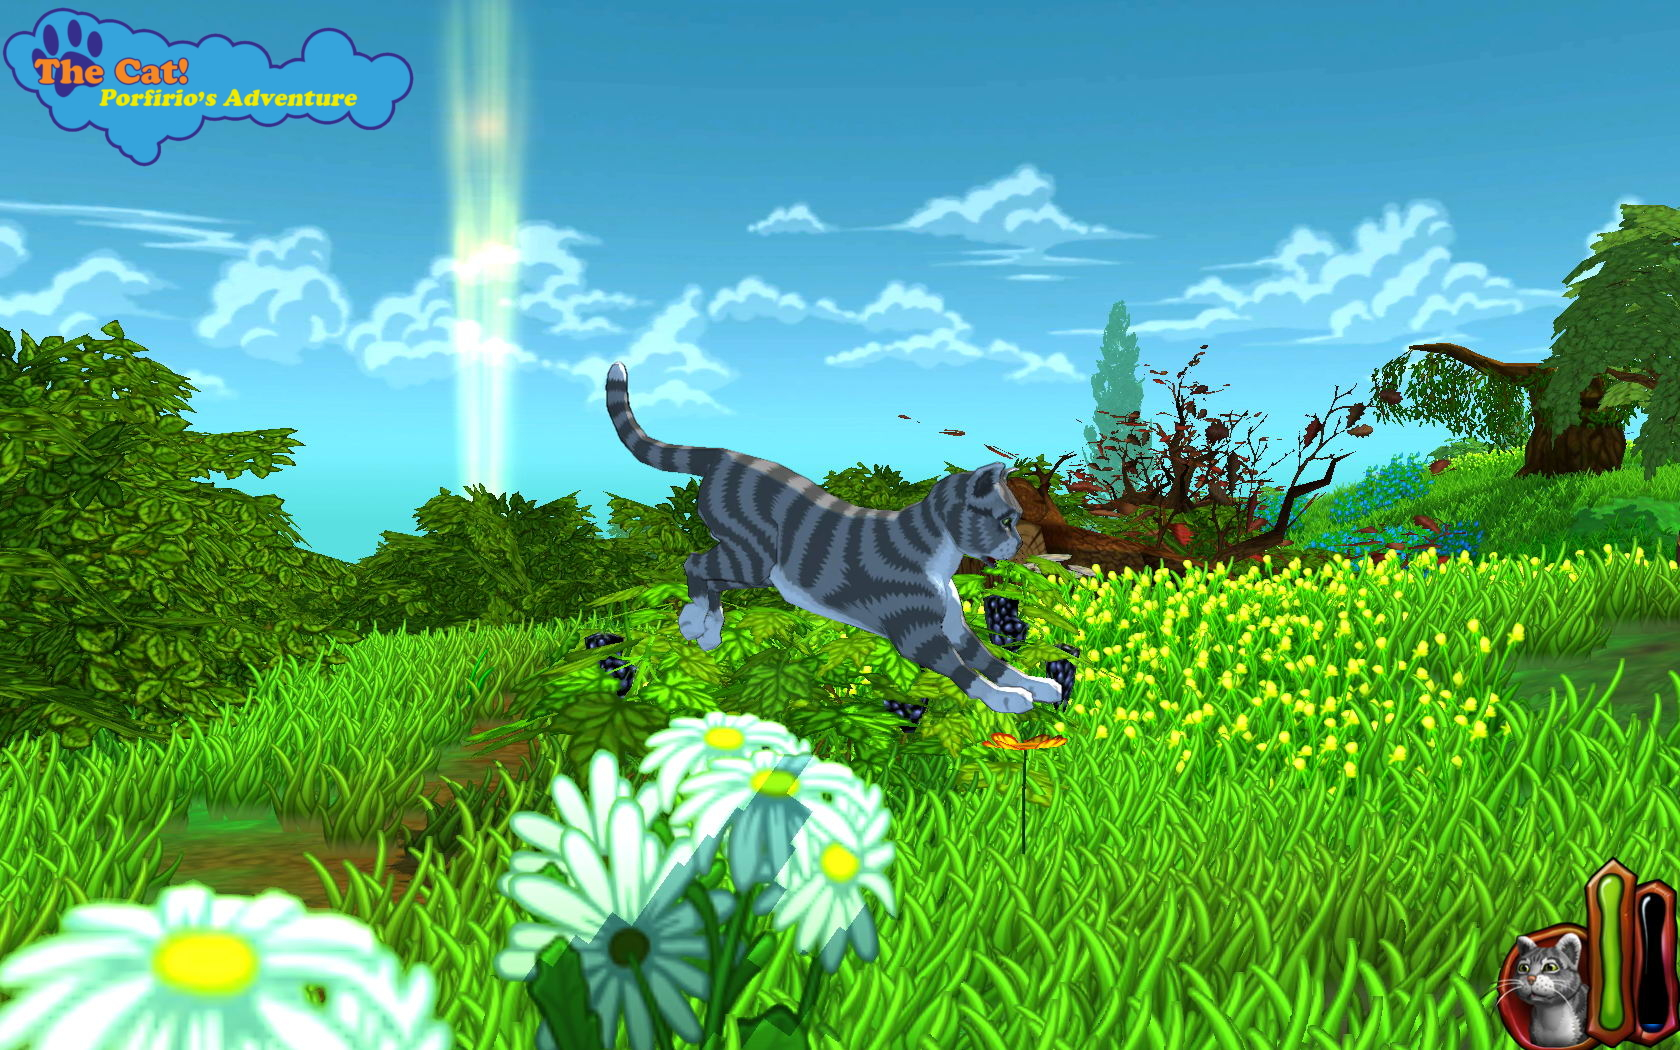 The Cat! Porfirio's Adventure, now available on Steam